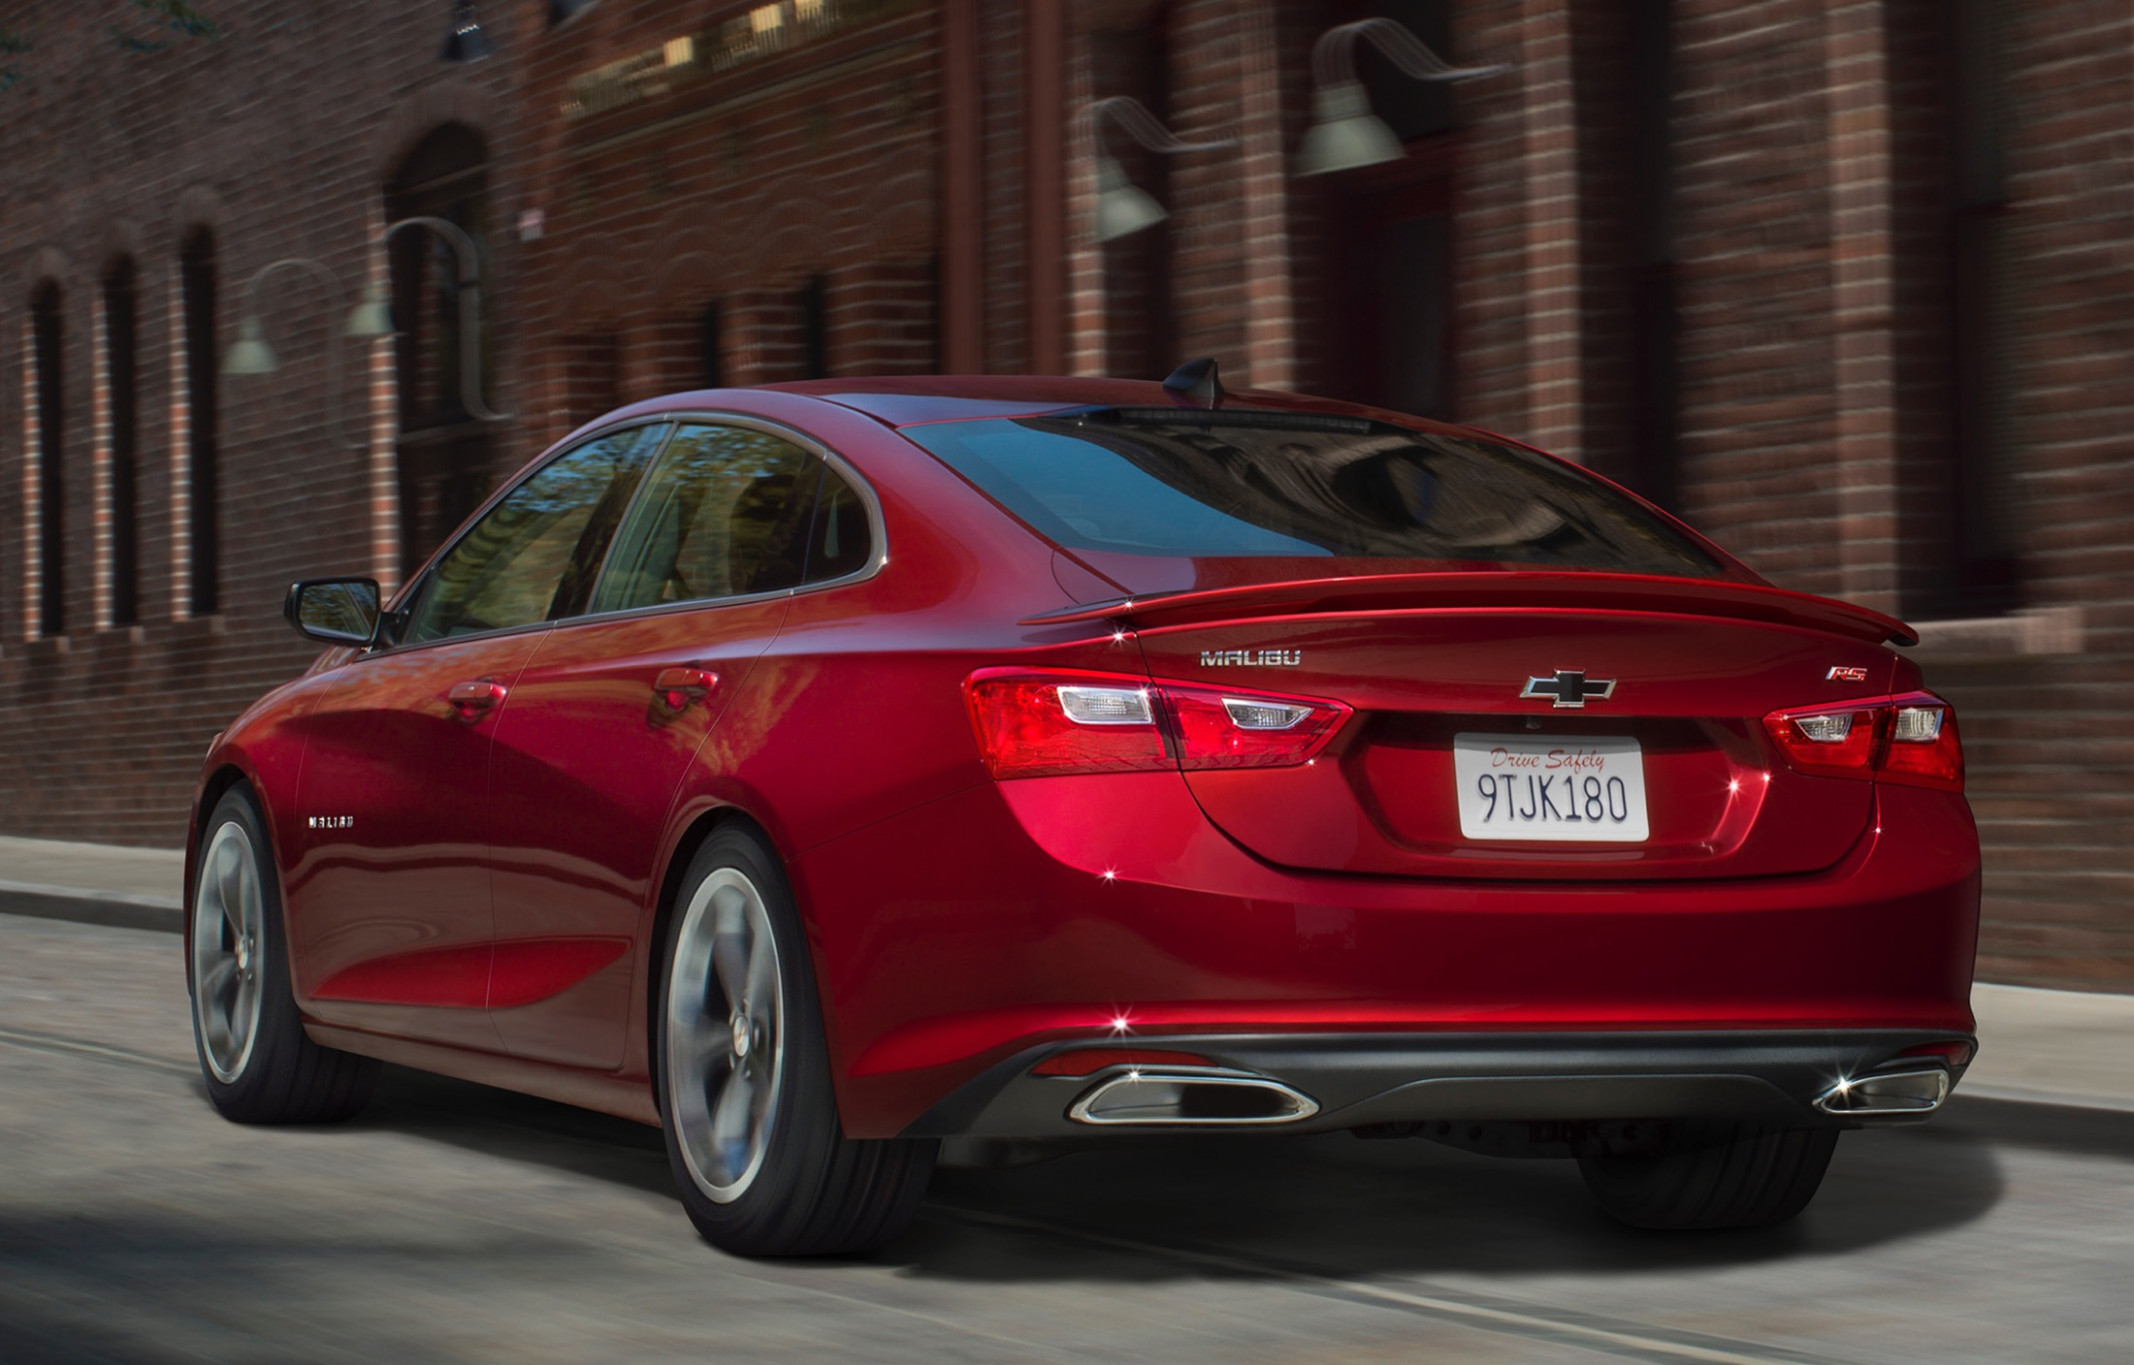 6 Chevy Malibu Info, Availability, Price, Review, Specs, Wiki ..